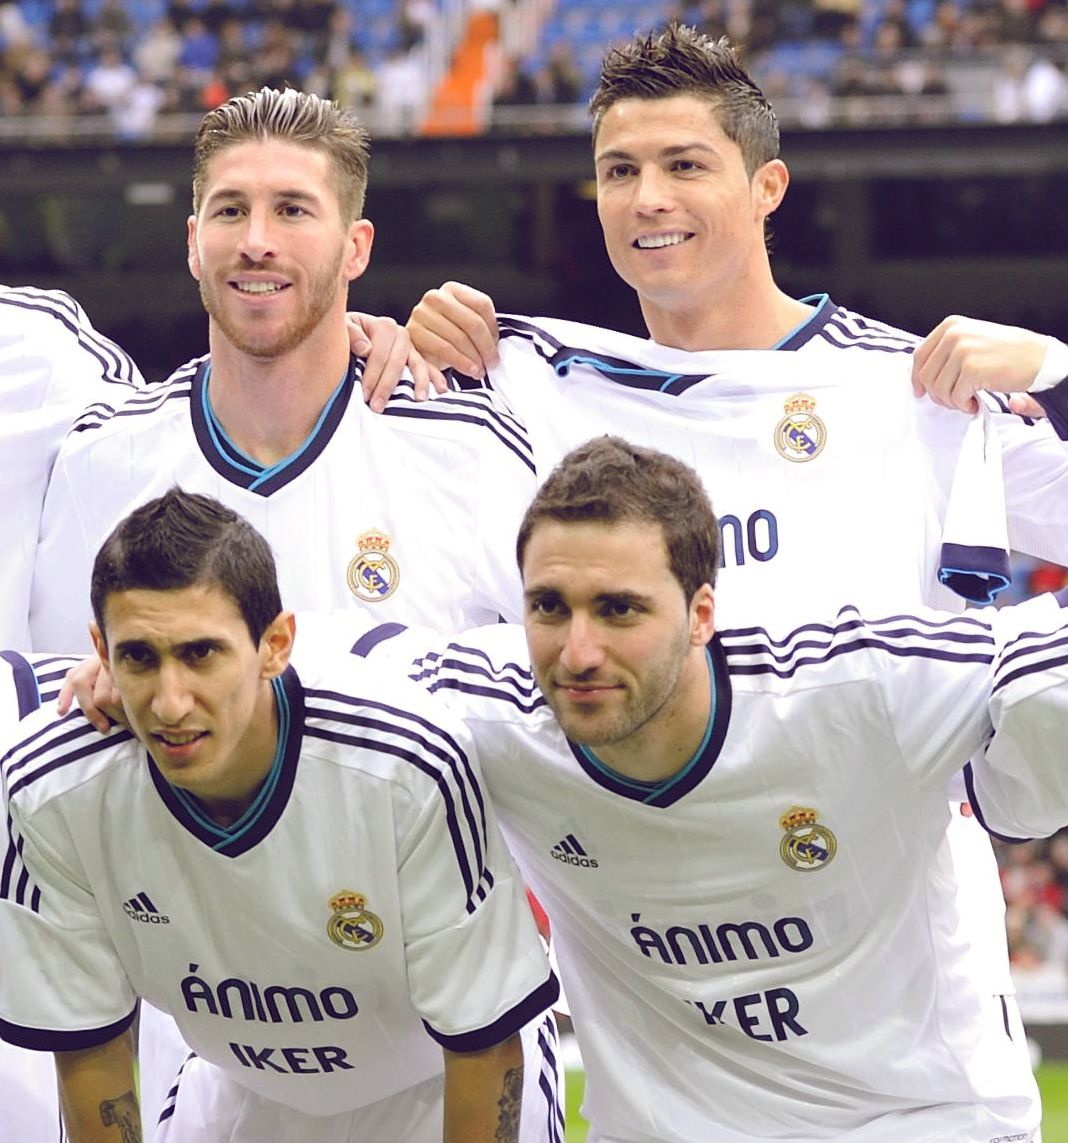 Real Madrid Players Wore Animo Iker Shirts On The Pitch Before The Game Against Getafe In Support Of Their Captain Who Is Out On A Hand Injury Fo Calcio Marito